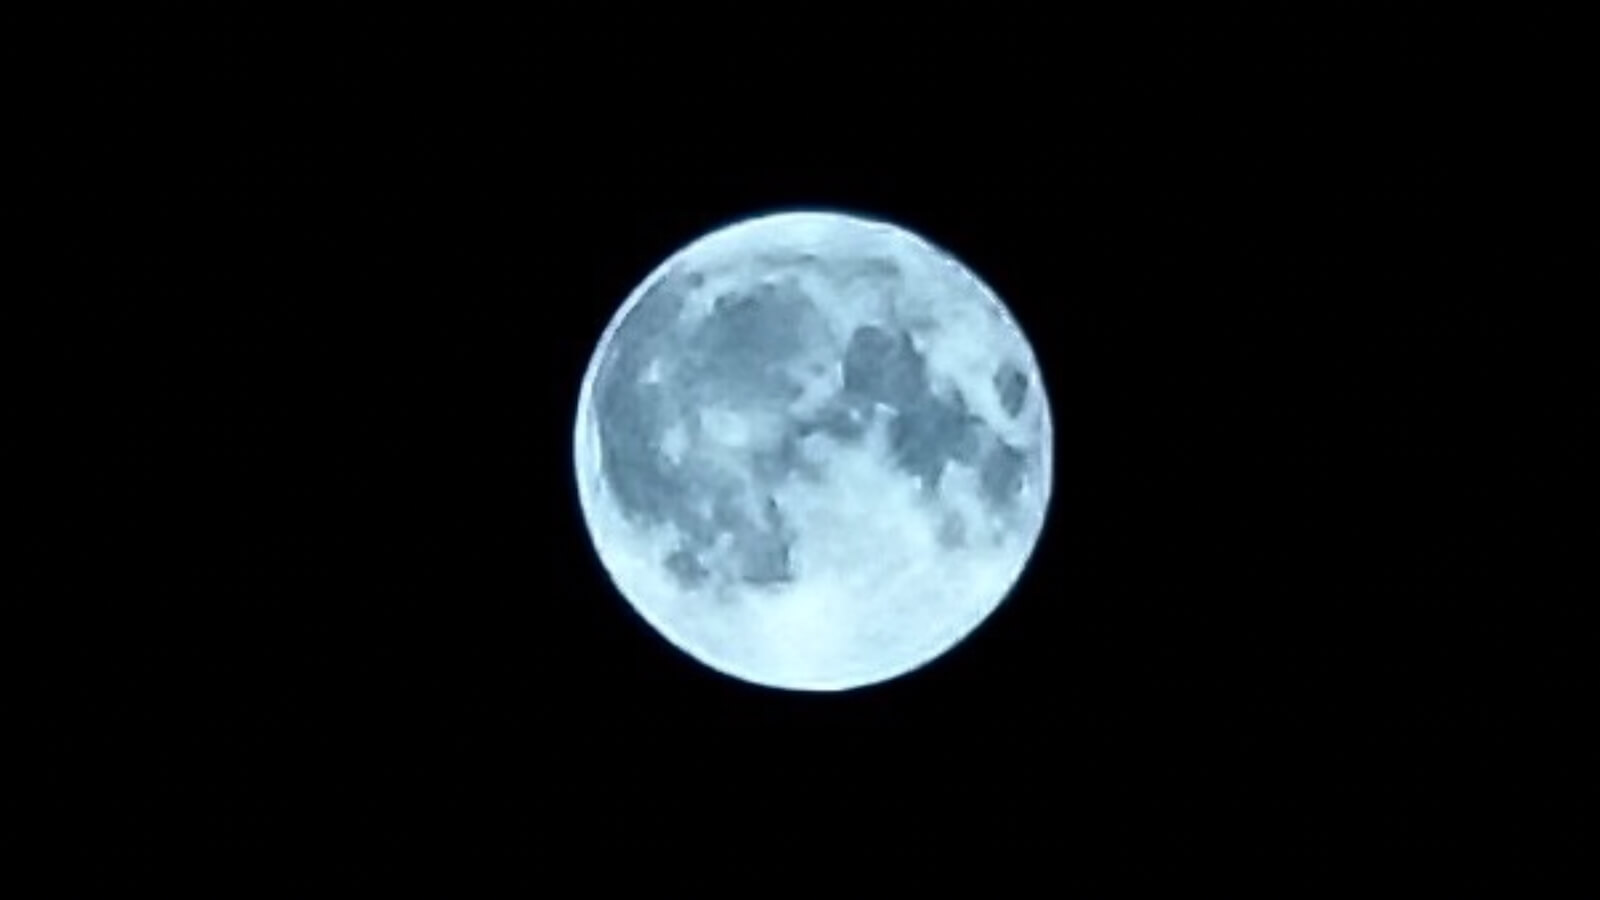 Autumn full moon taken with RX100M5A